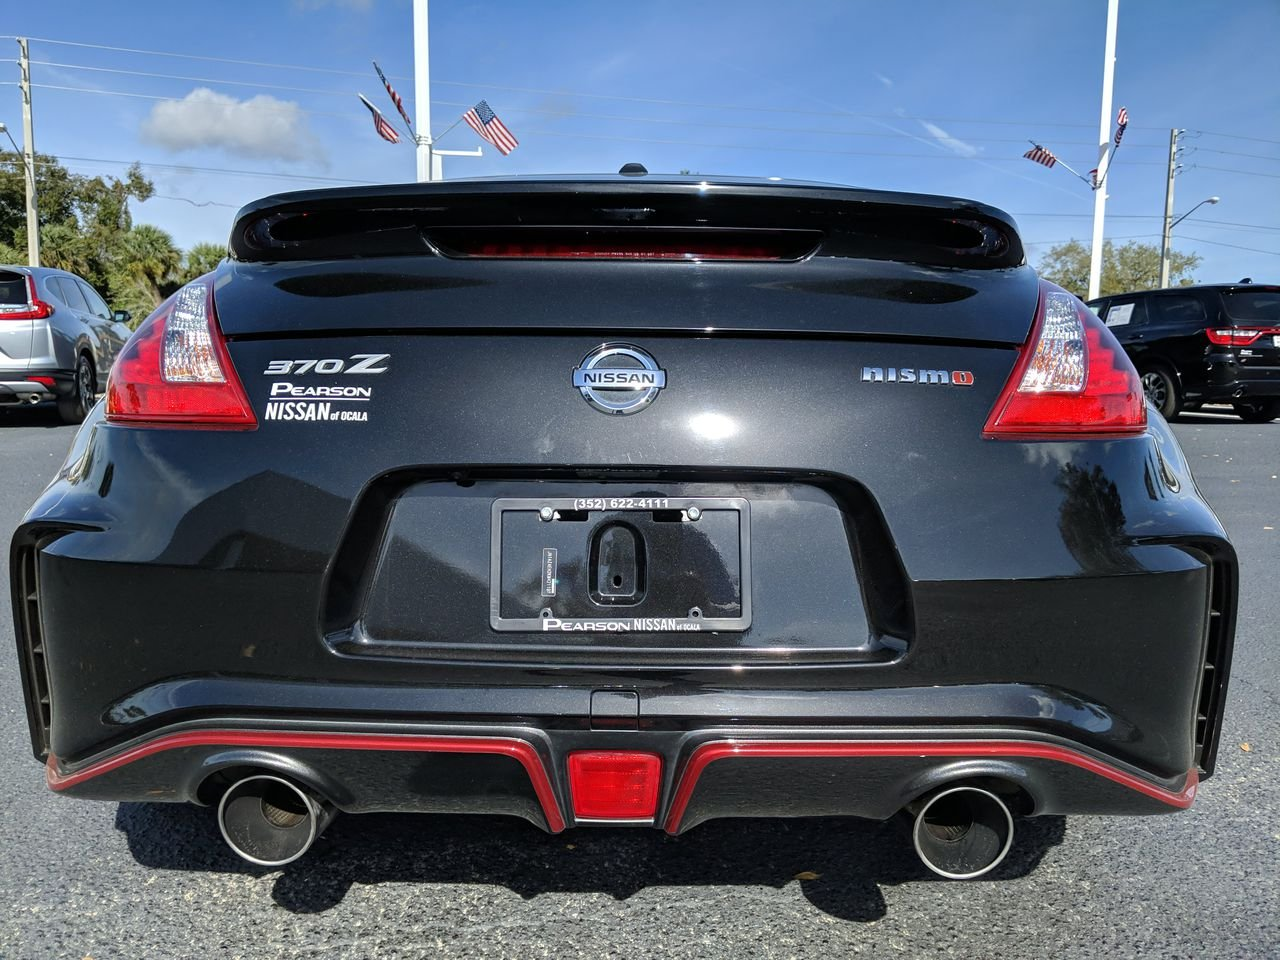 370z Nismo Black Beautiful Certified Pre Owned 2019 Nissan 370z Coupe Nismo with Navigation